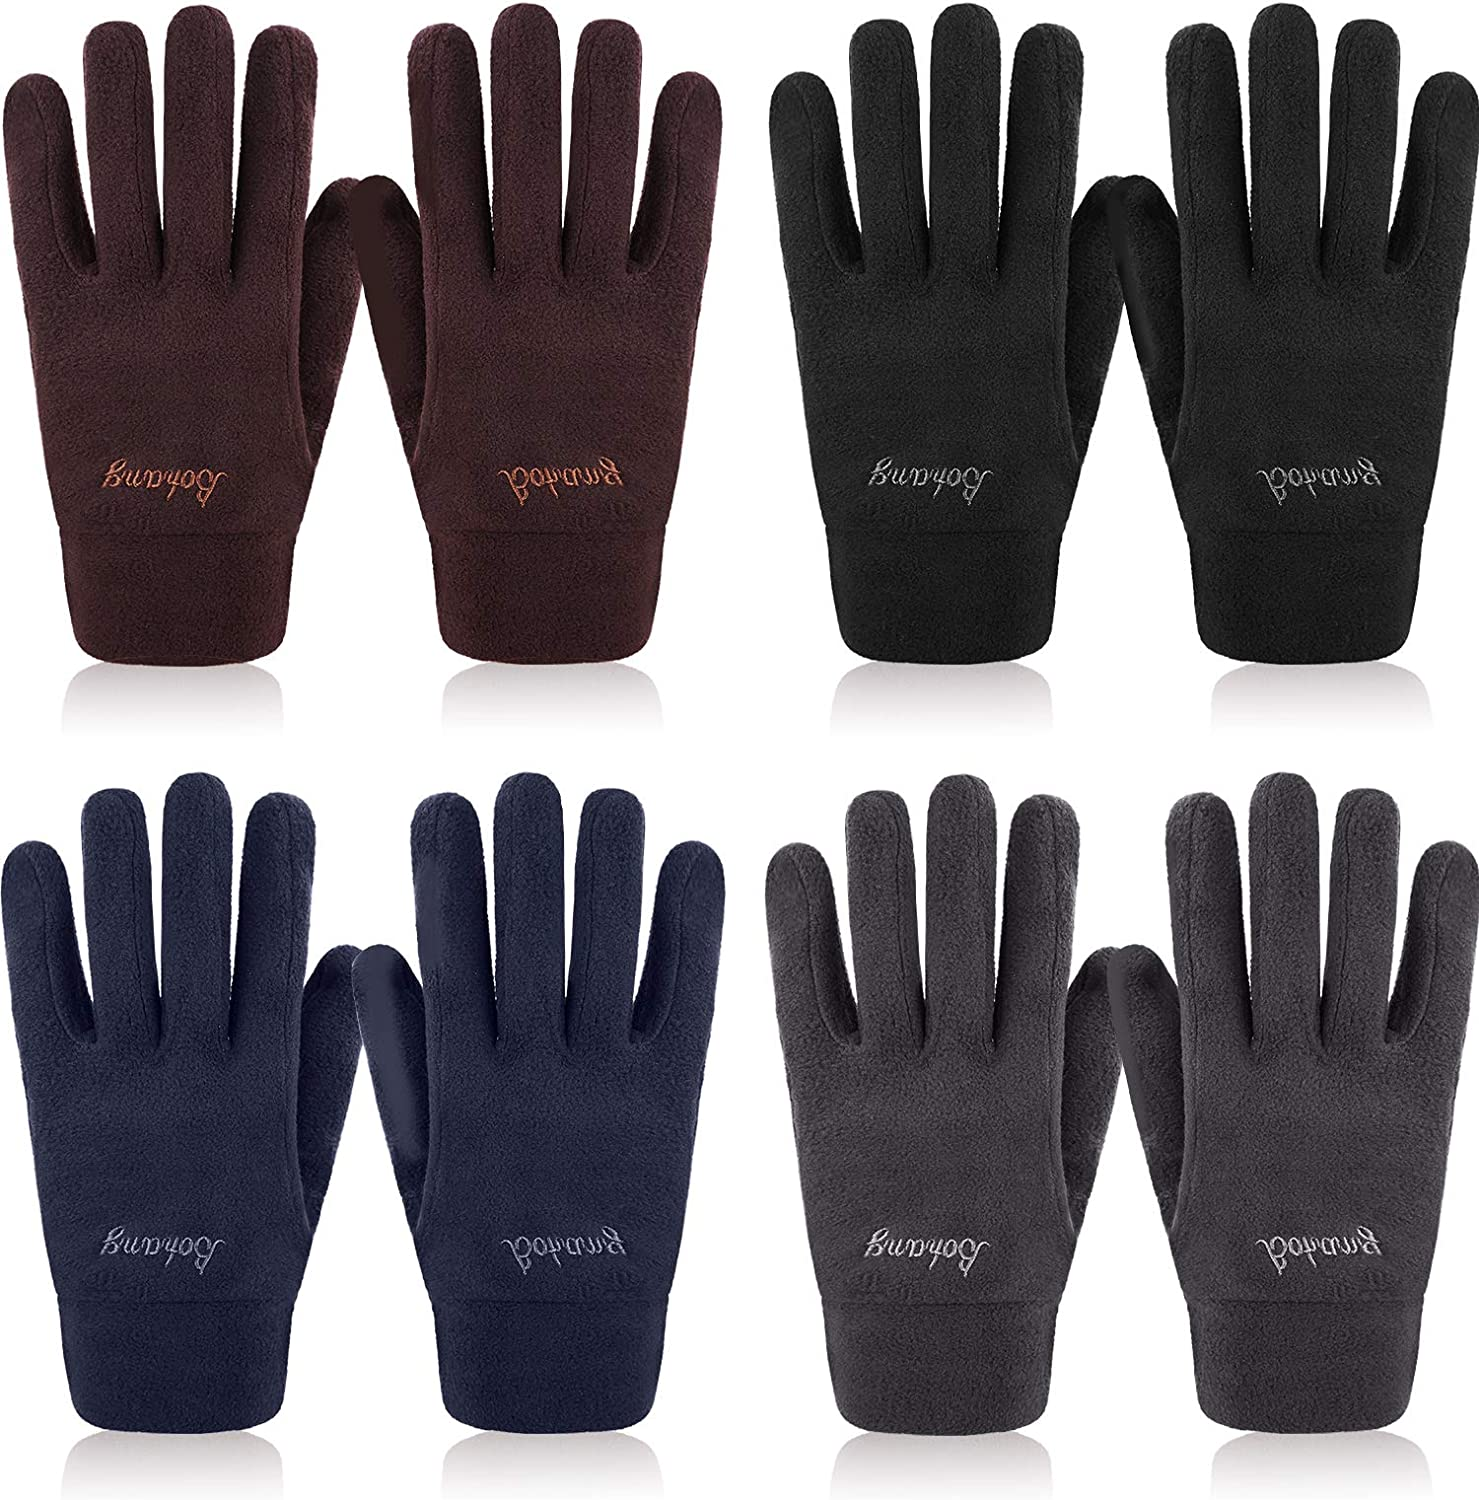 4 Pairs Adult Fleece Gloves Winter Warm Mittens Thick Full Finger Gloves, 4 Colors (Black, Navy Blue, Coffee, Dark Grey)